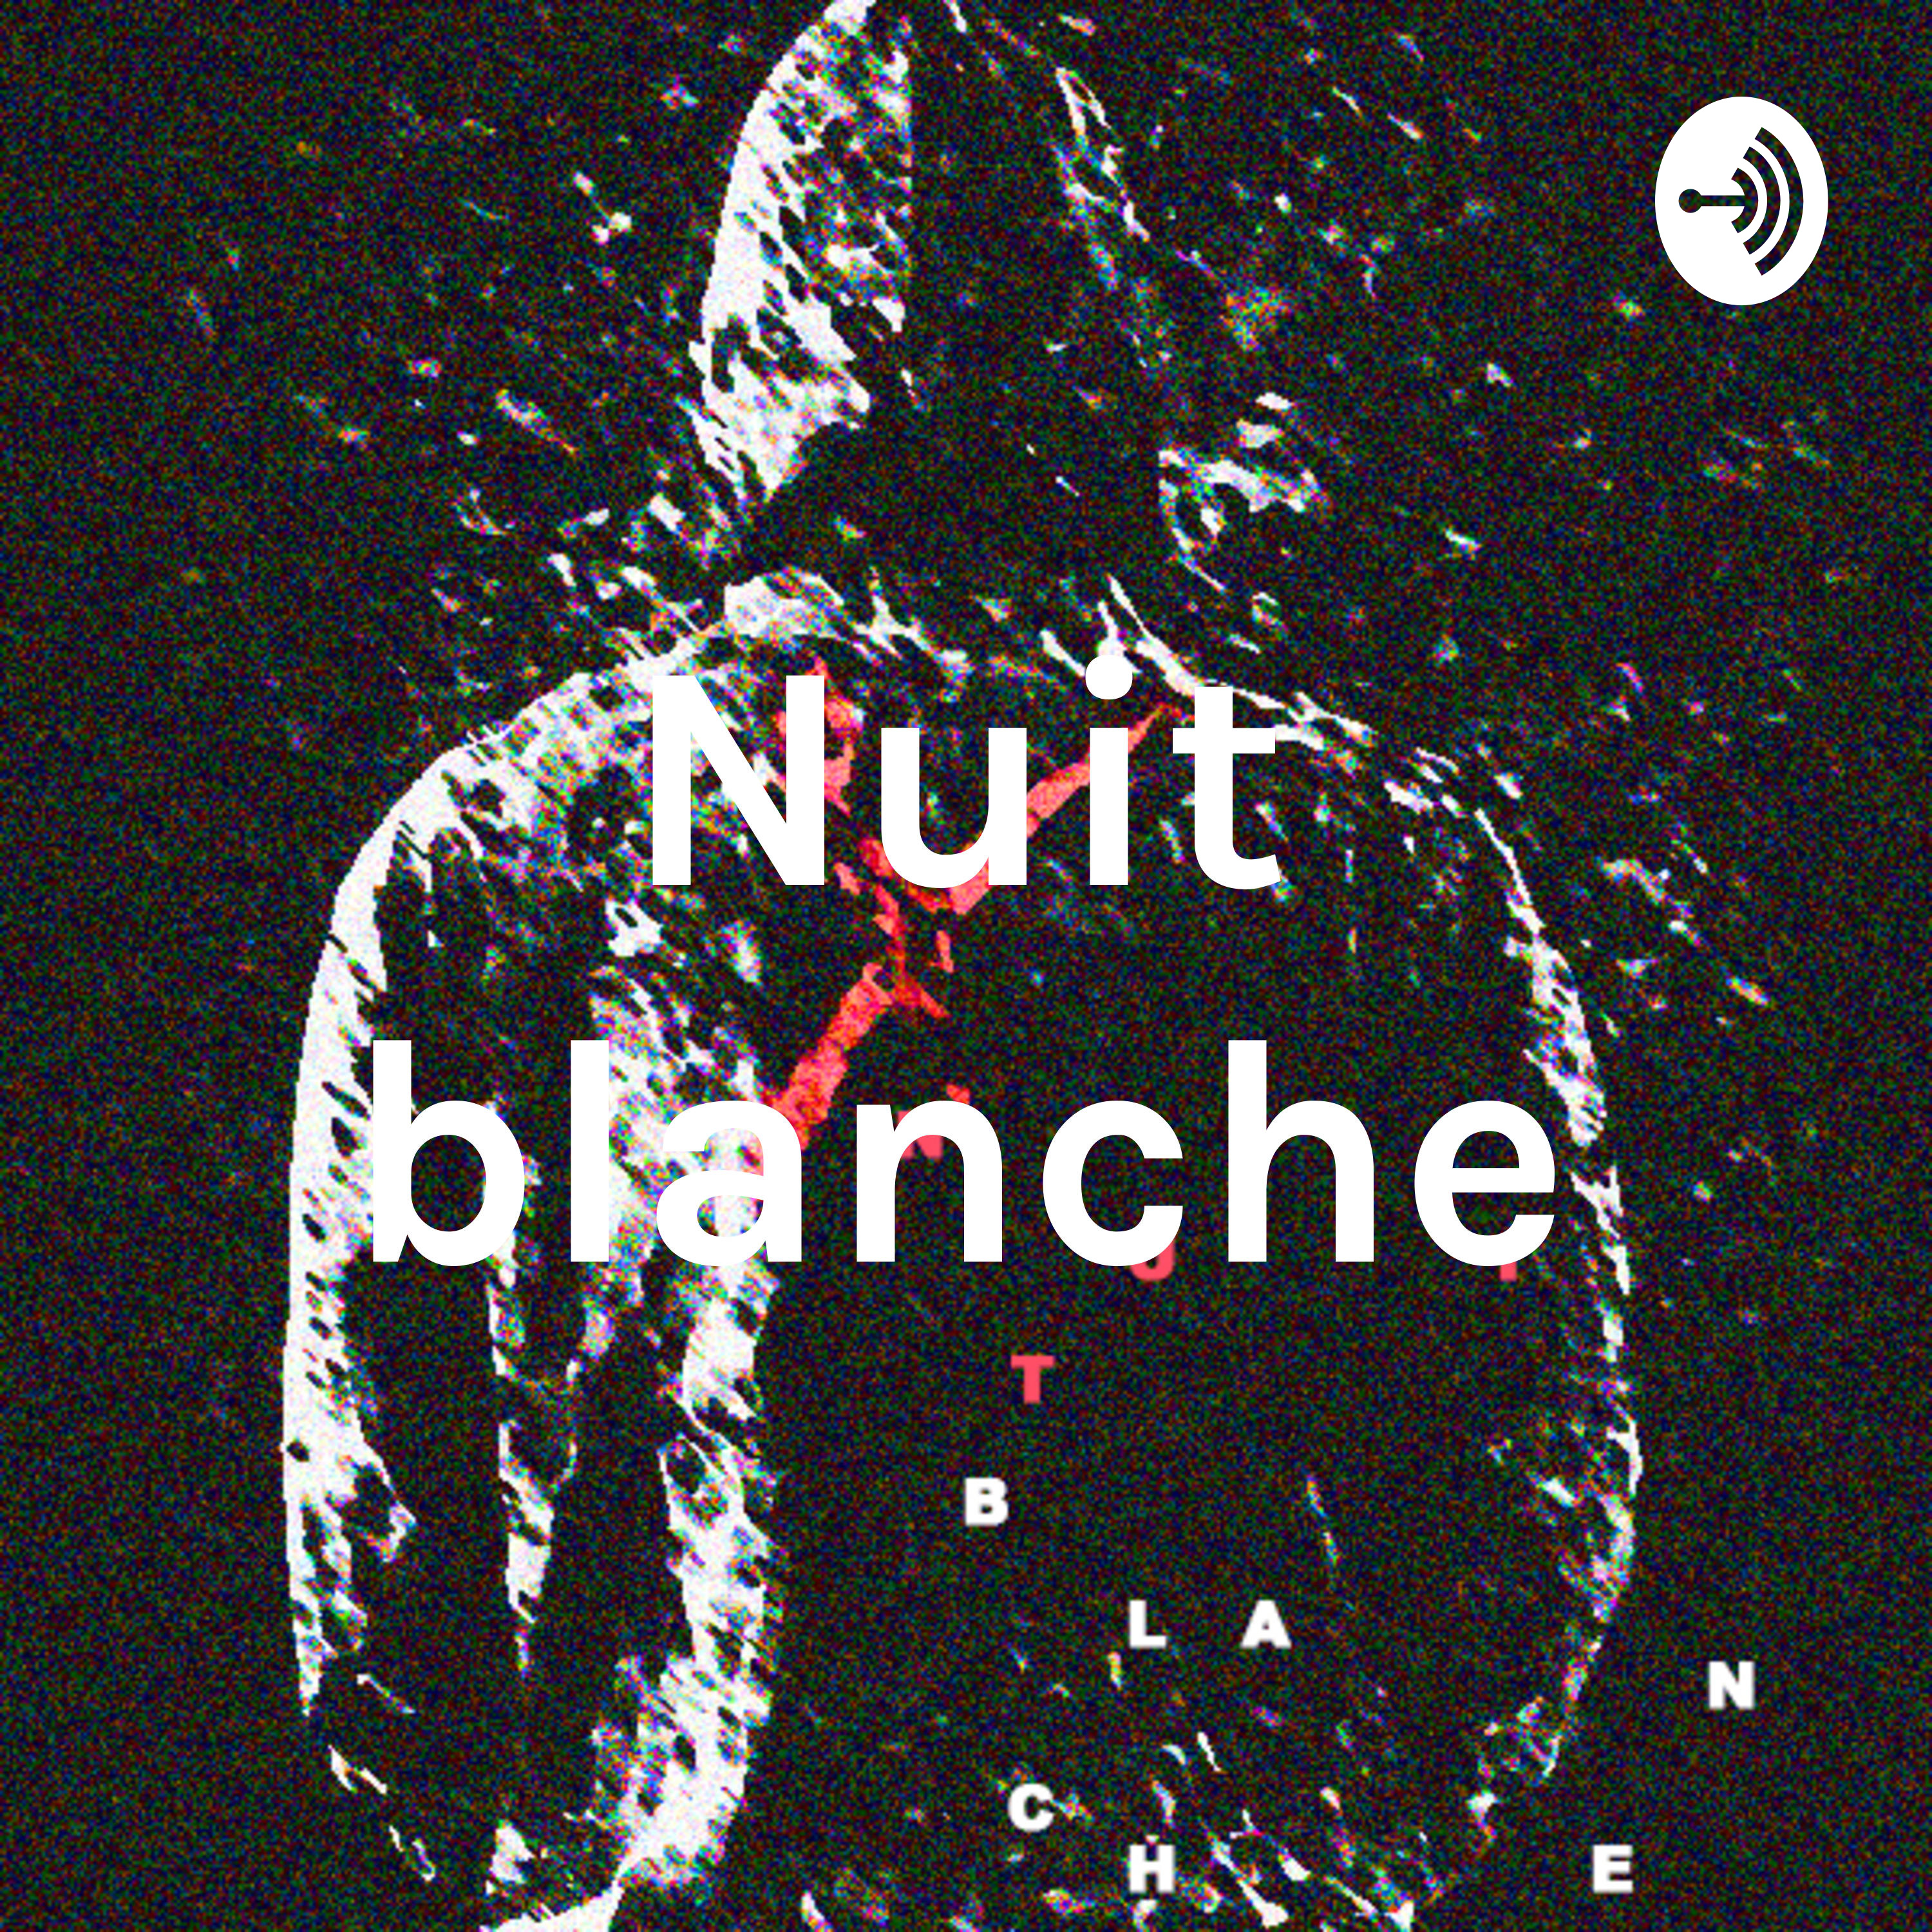 Nuit blanche - EP10